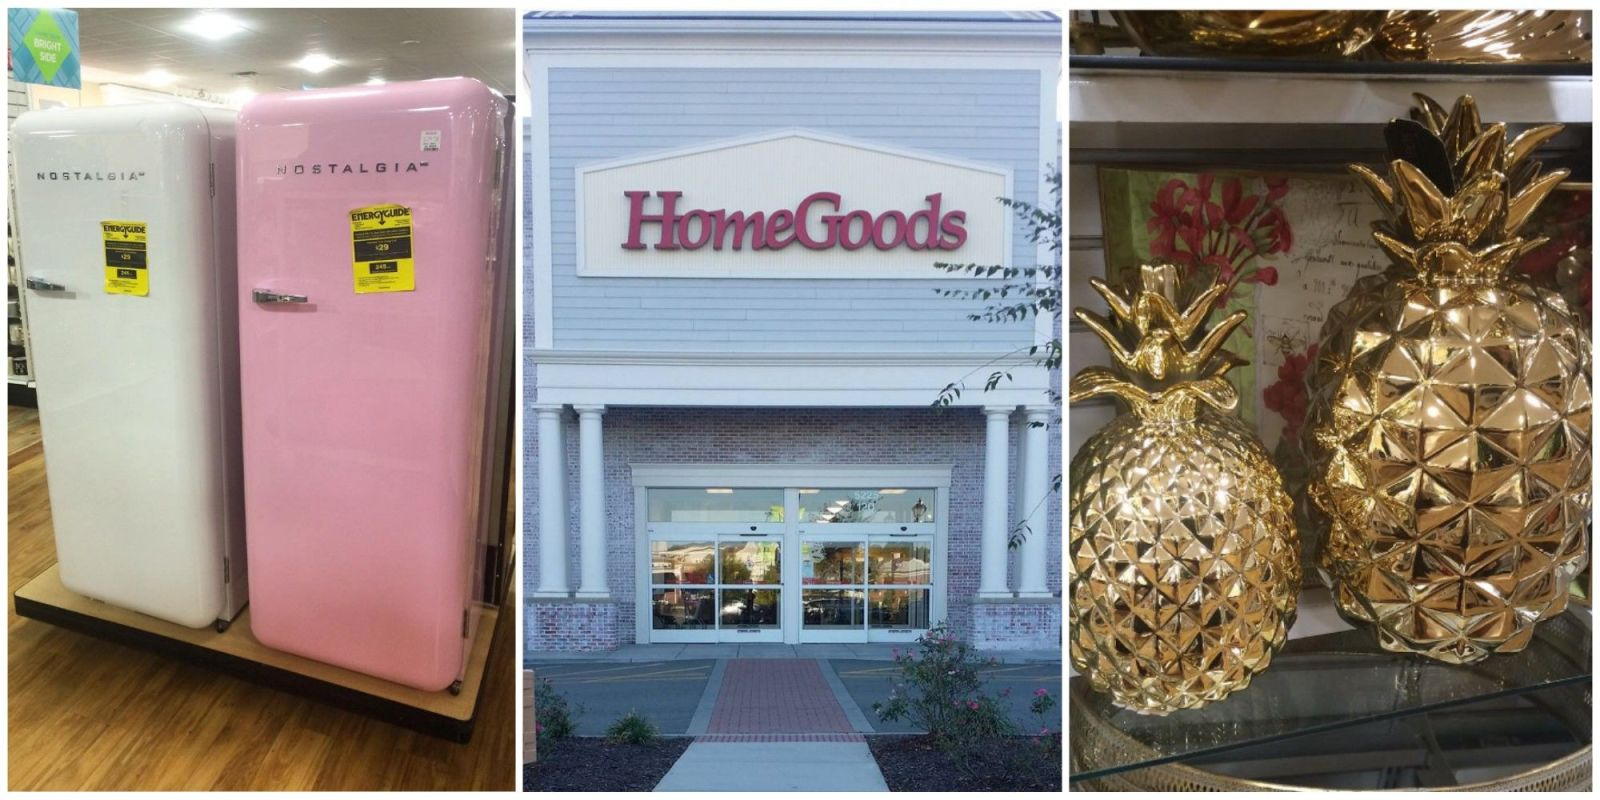 This HomeGoods Super Shopper Revealed How to Find the Best Items